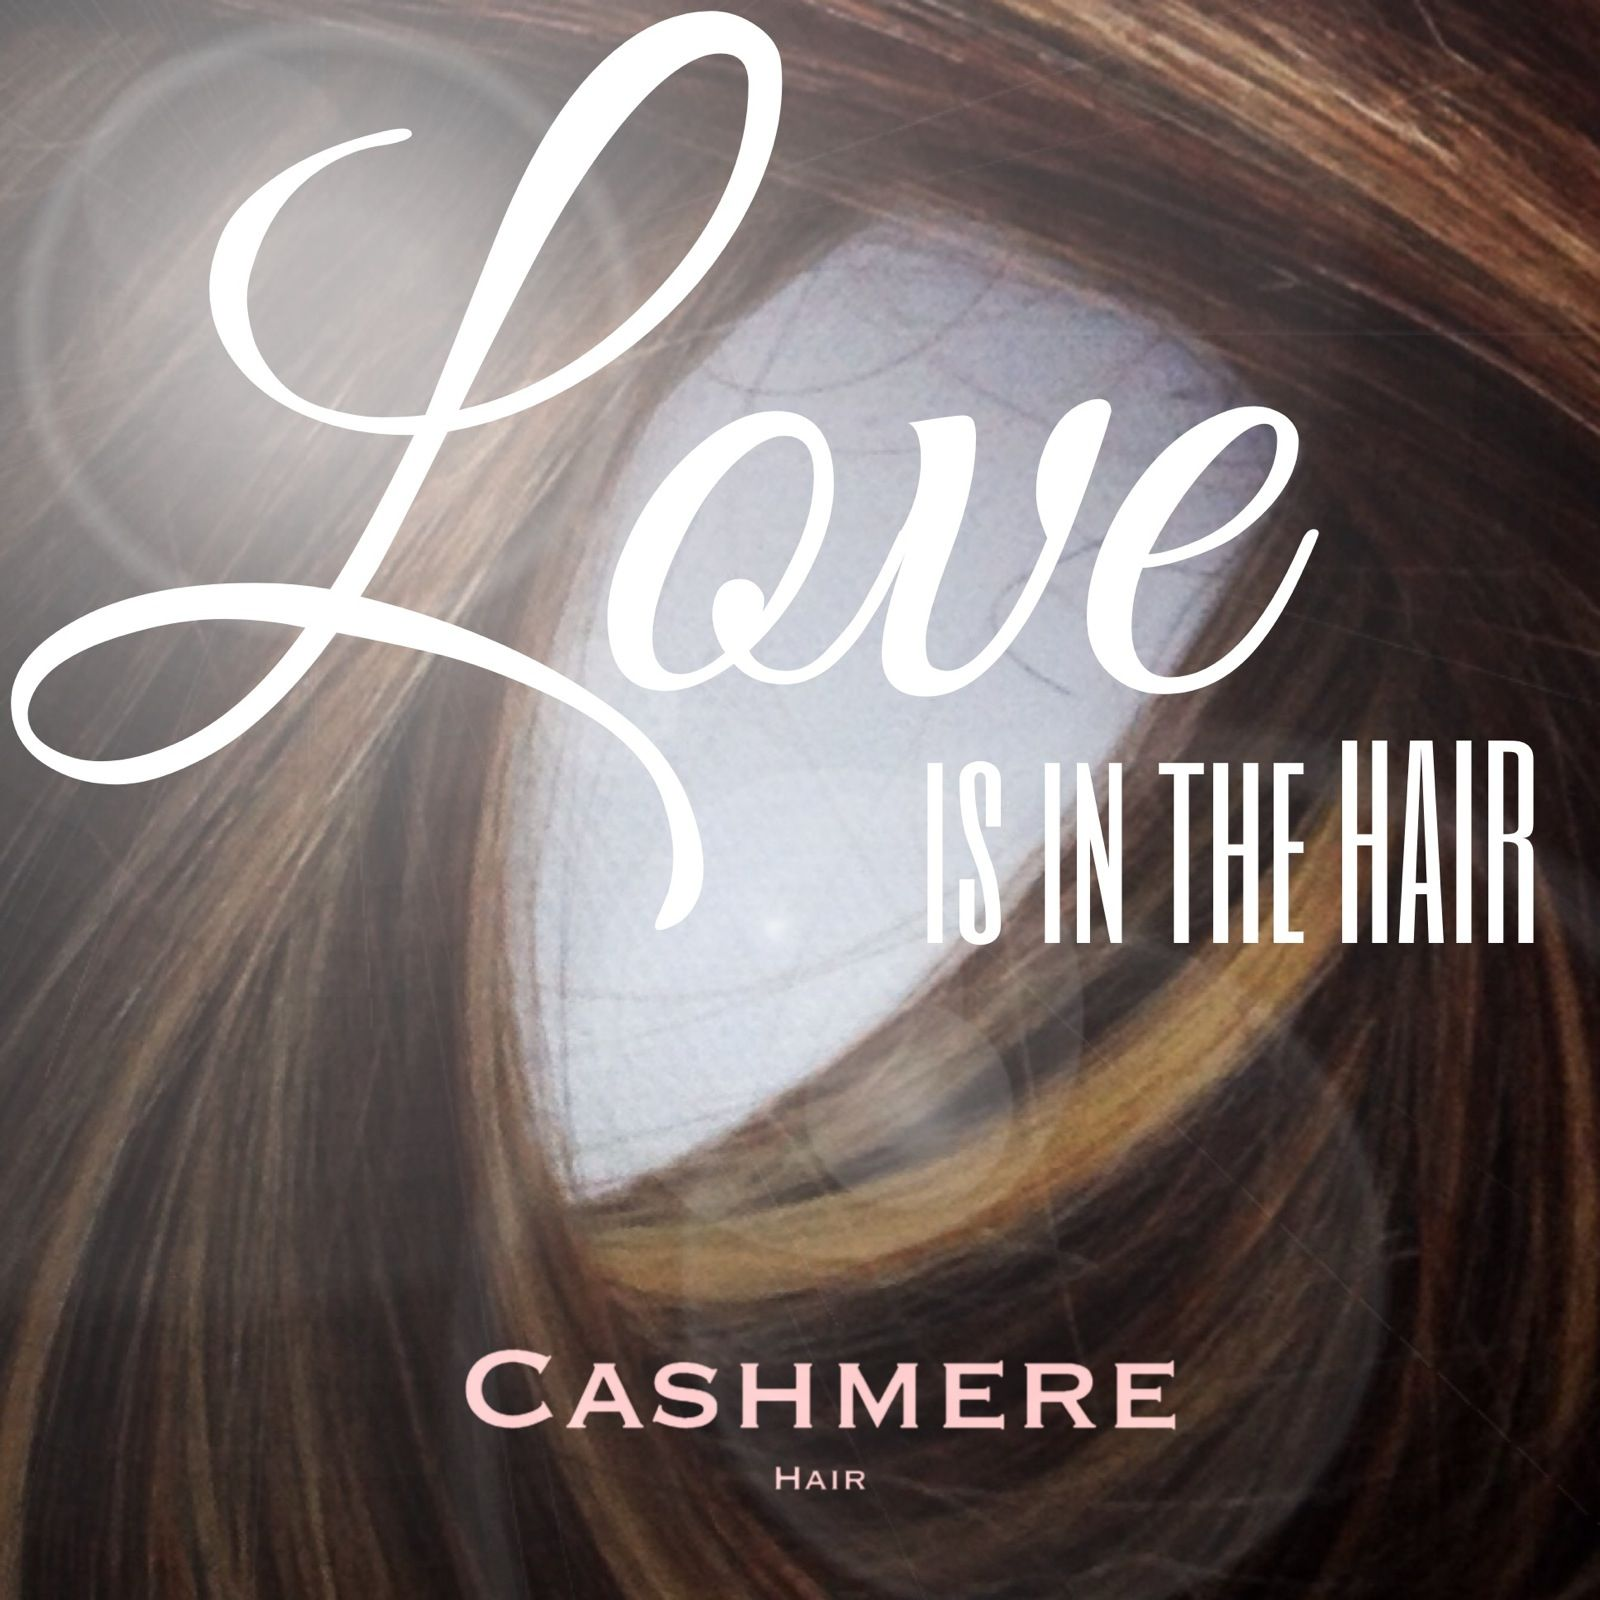 Cashmere hair luxury clip in hair extensions httpcashmere cashmere hair luxury clip in hair extensions httpcashmere pmusecretfo Gallery